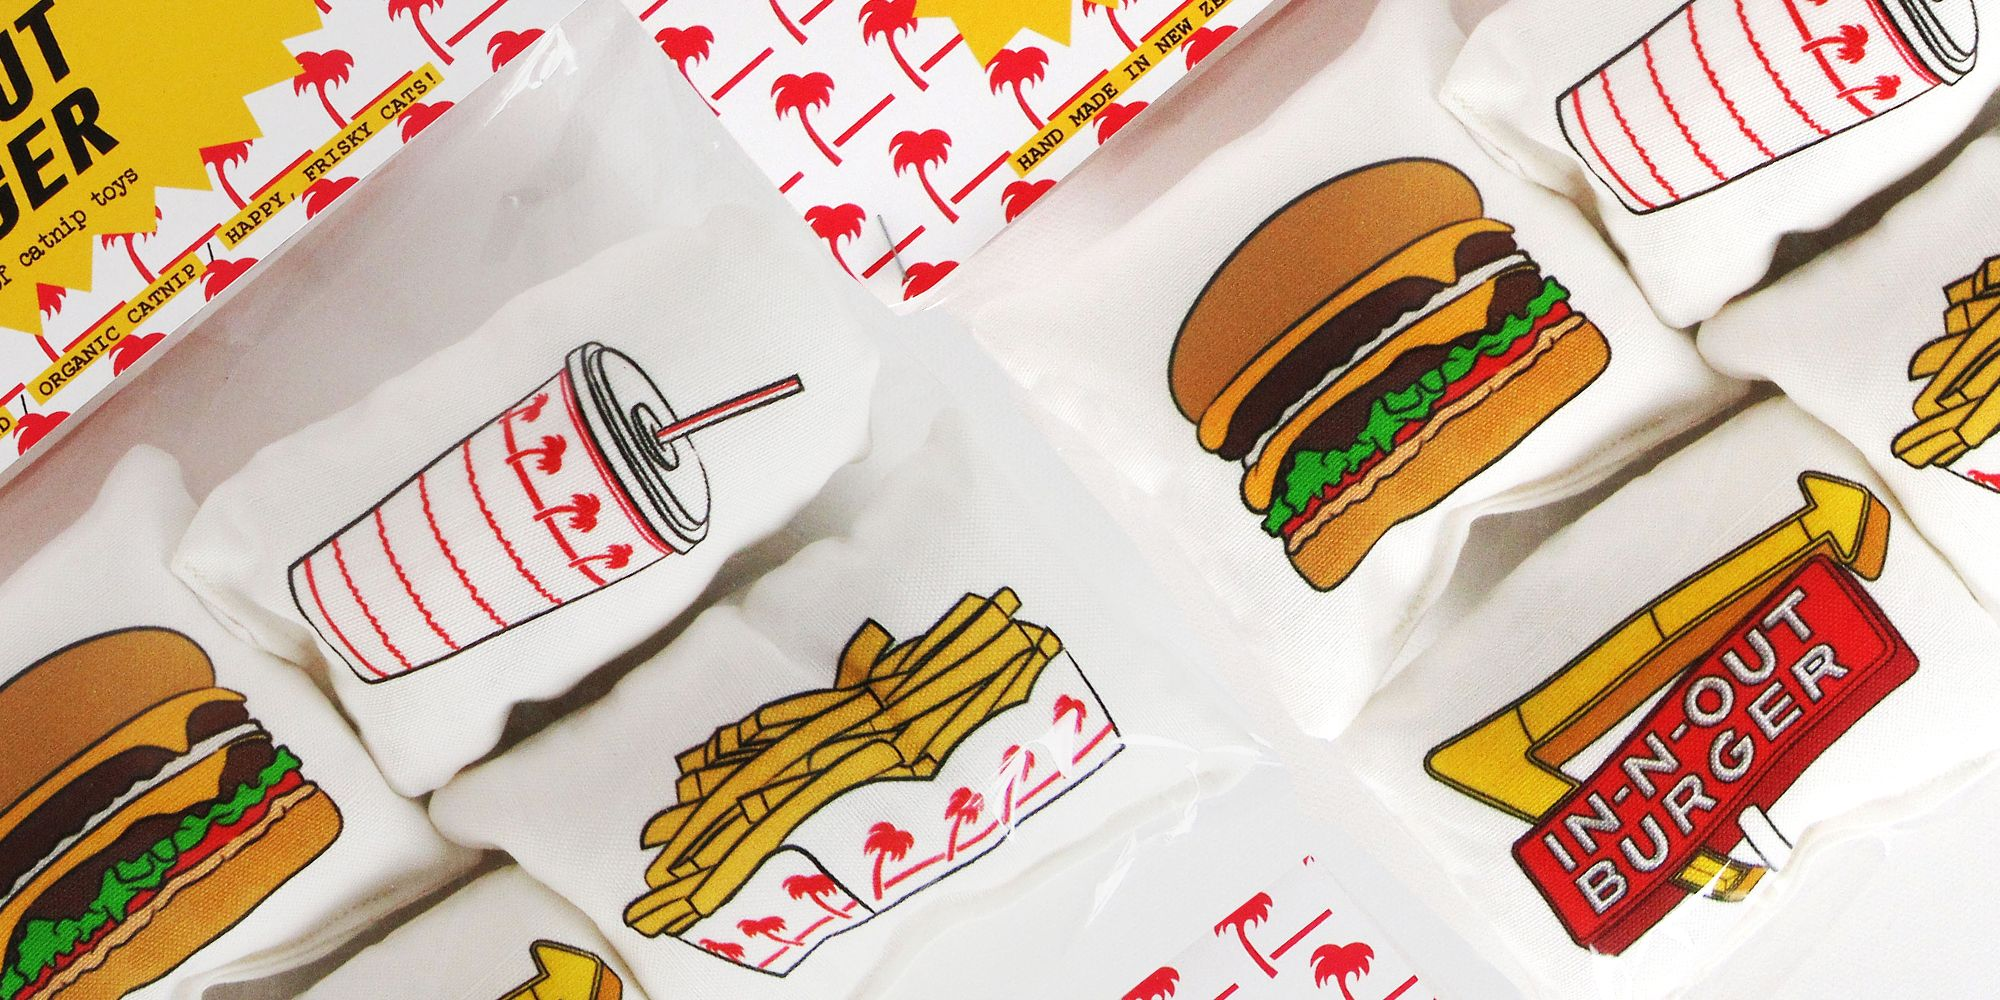 11 Best In-N-Out Shirts & Merchandise in 2018 - In-N-Out Burger Apparel